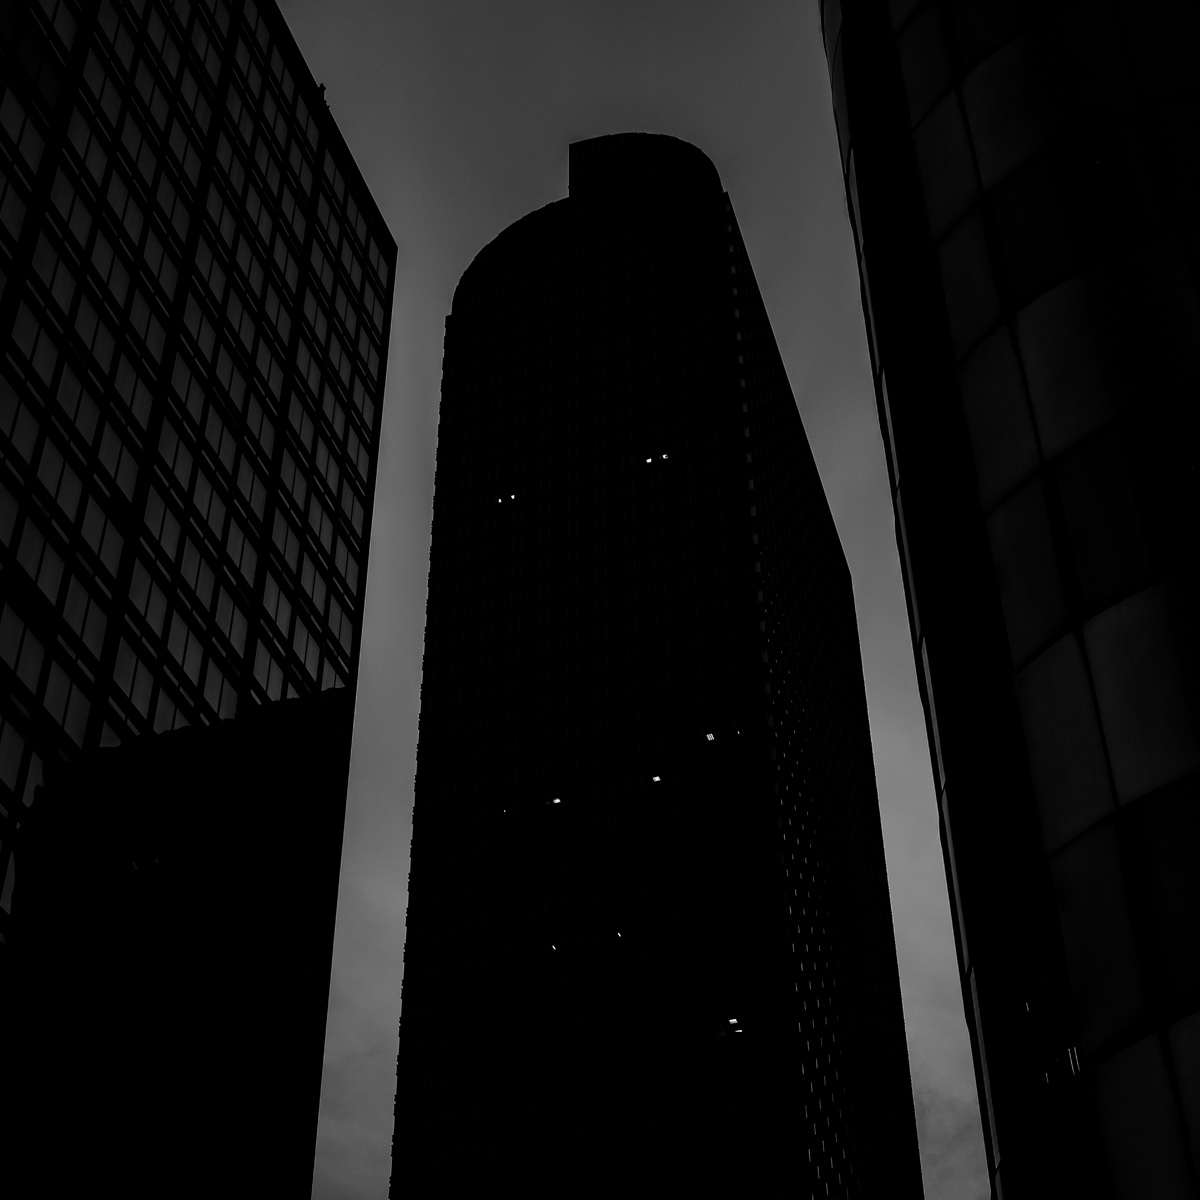 Day 85- 365 Day B&W Photo Challenge - The Wells Fargo Tower, also known as the Cash Register Building, in downtown Denver, Colorado - Fuji X100F, Acros R Film Simulation